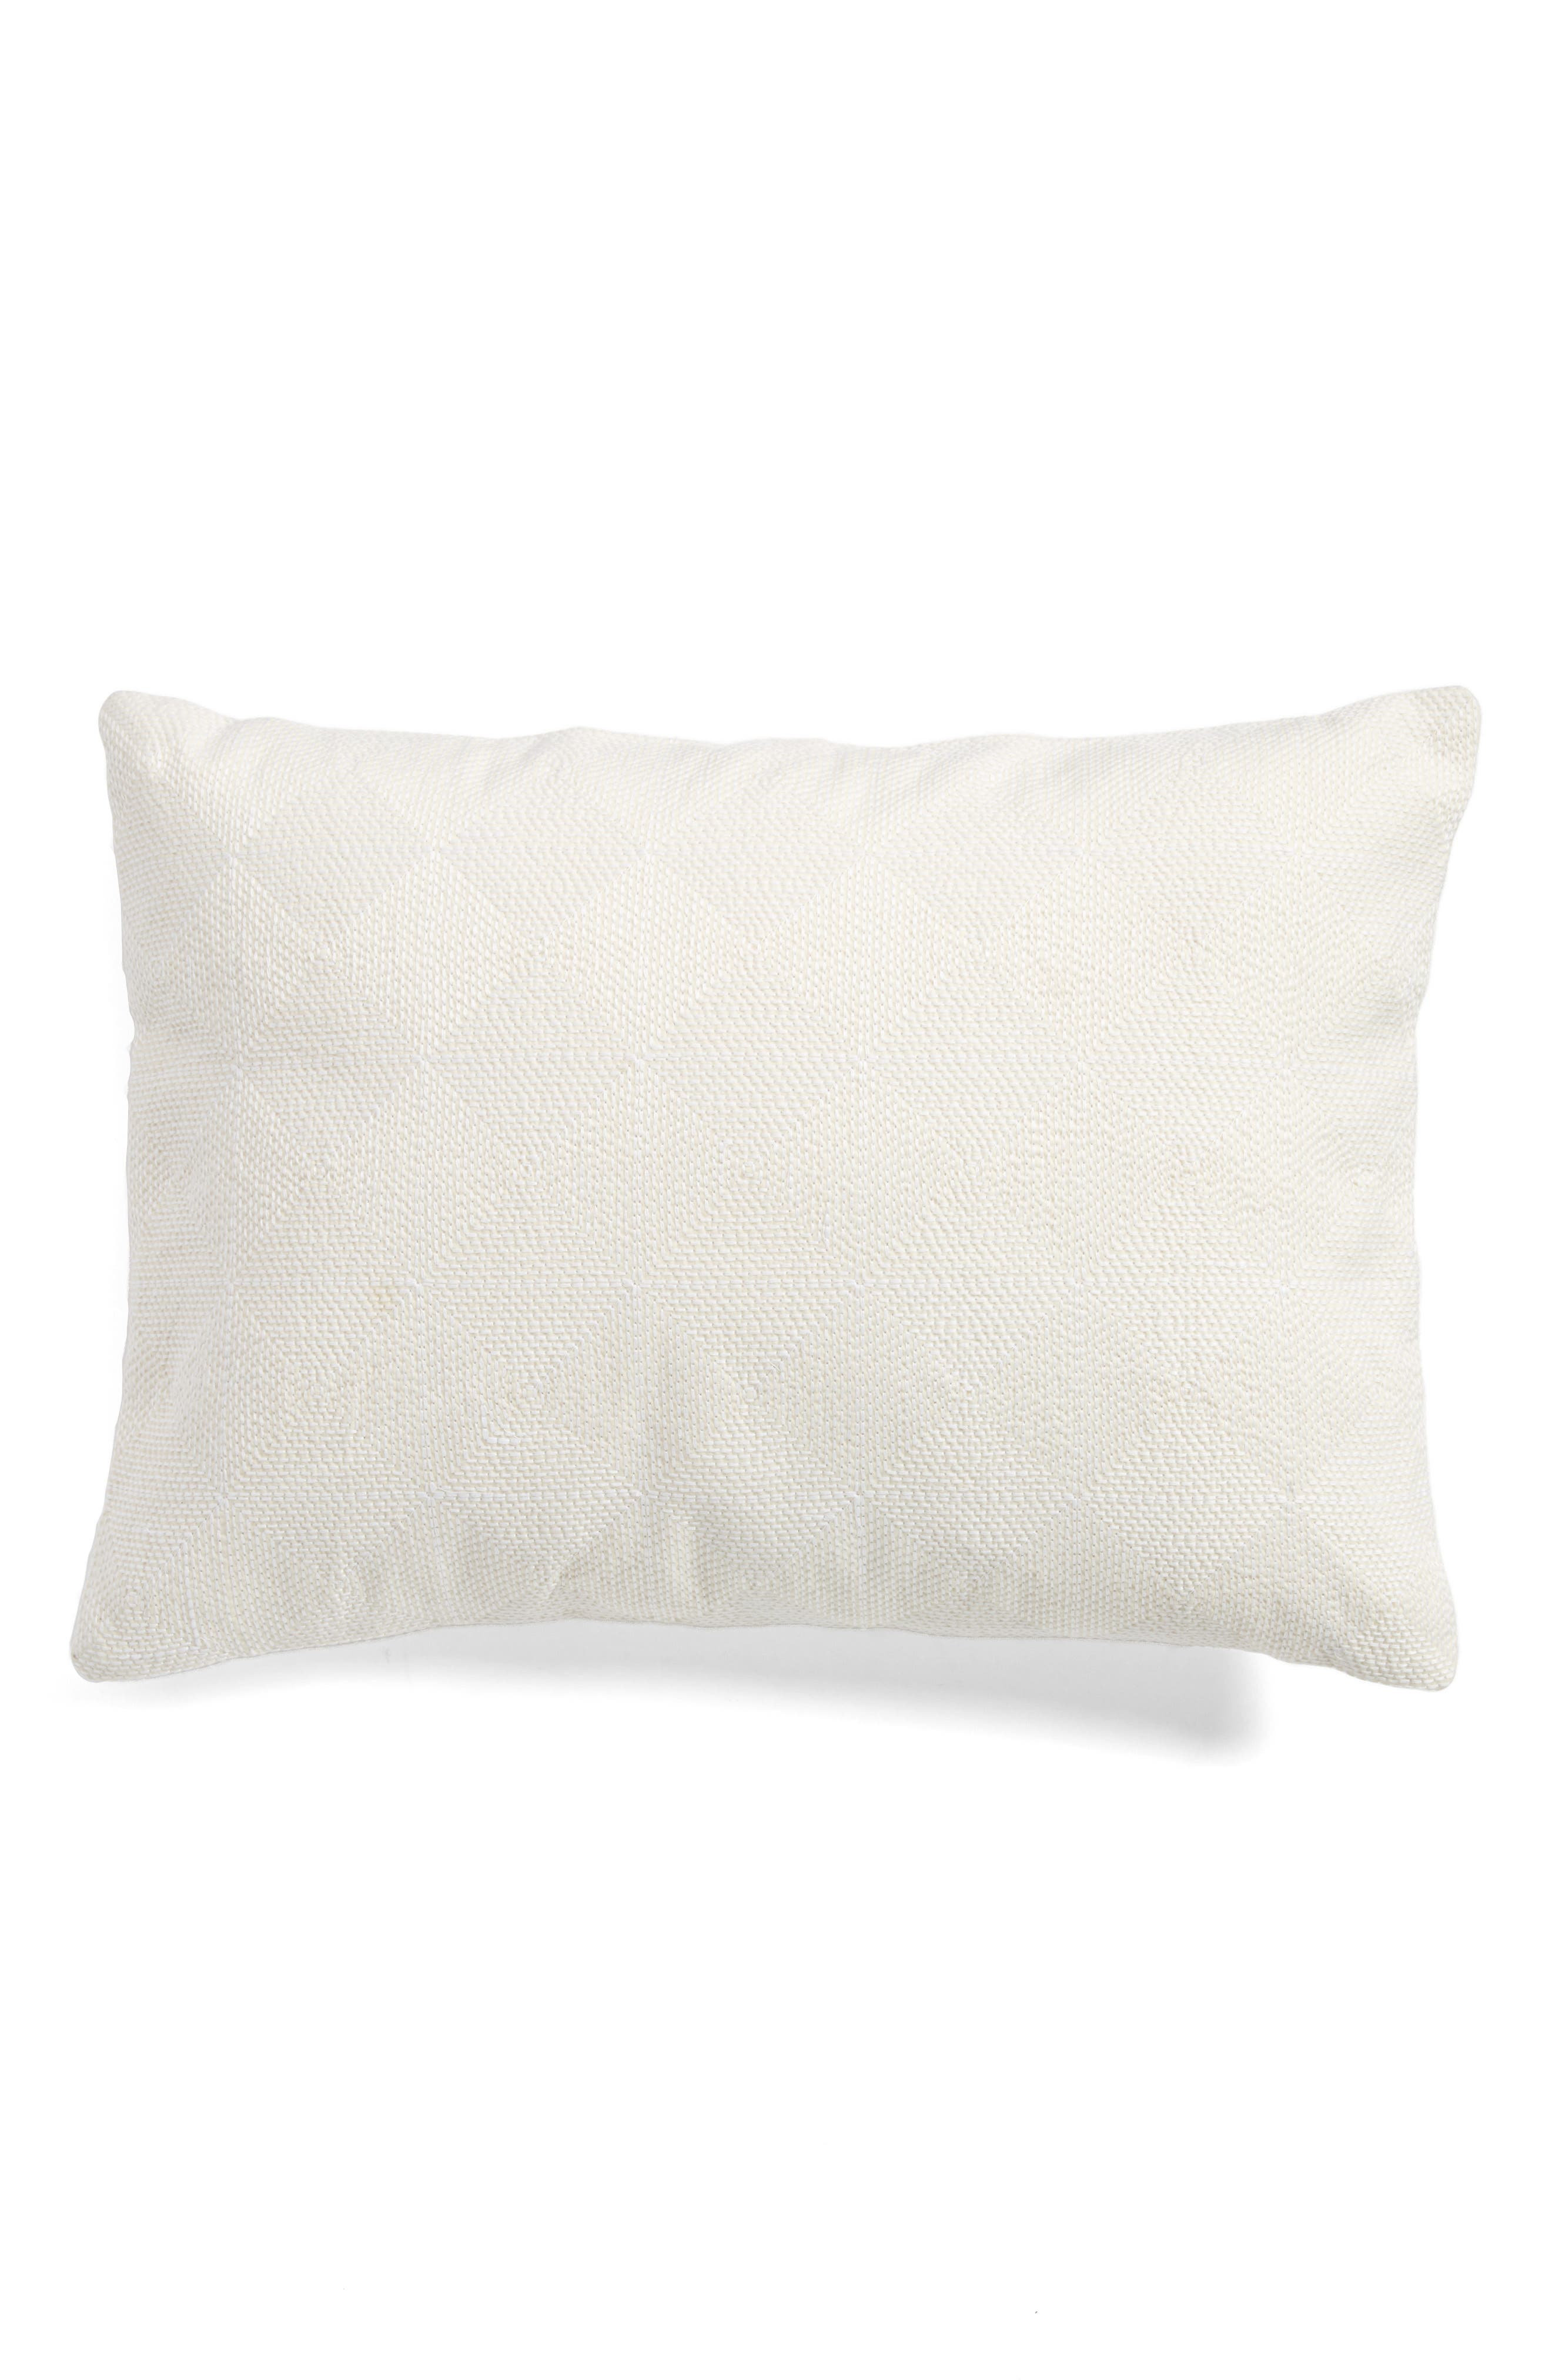 Fretwork Breakfast Pillow,                             Main thumbnail 1, color,                             250